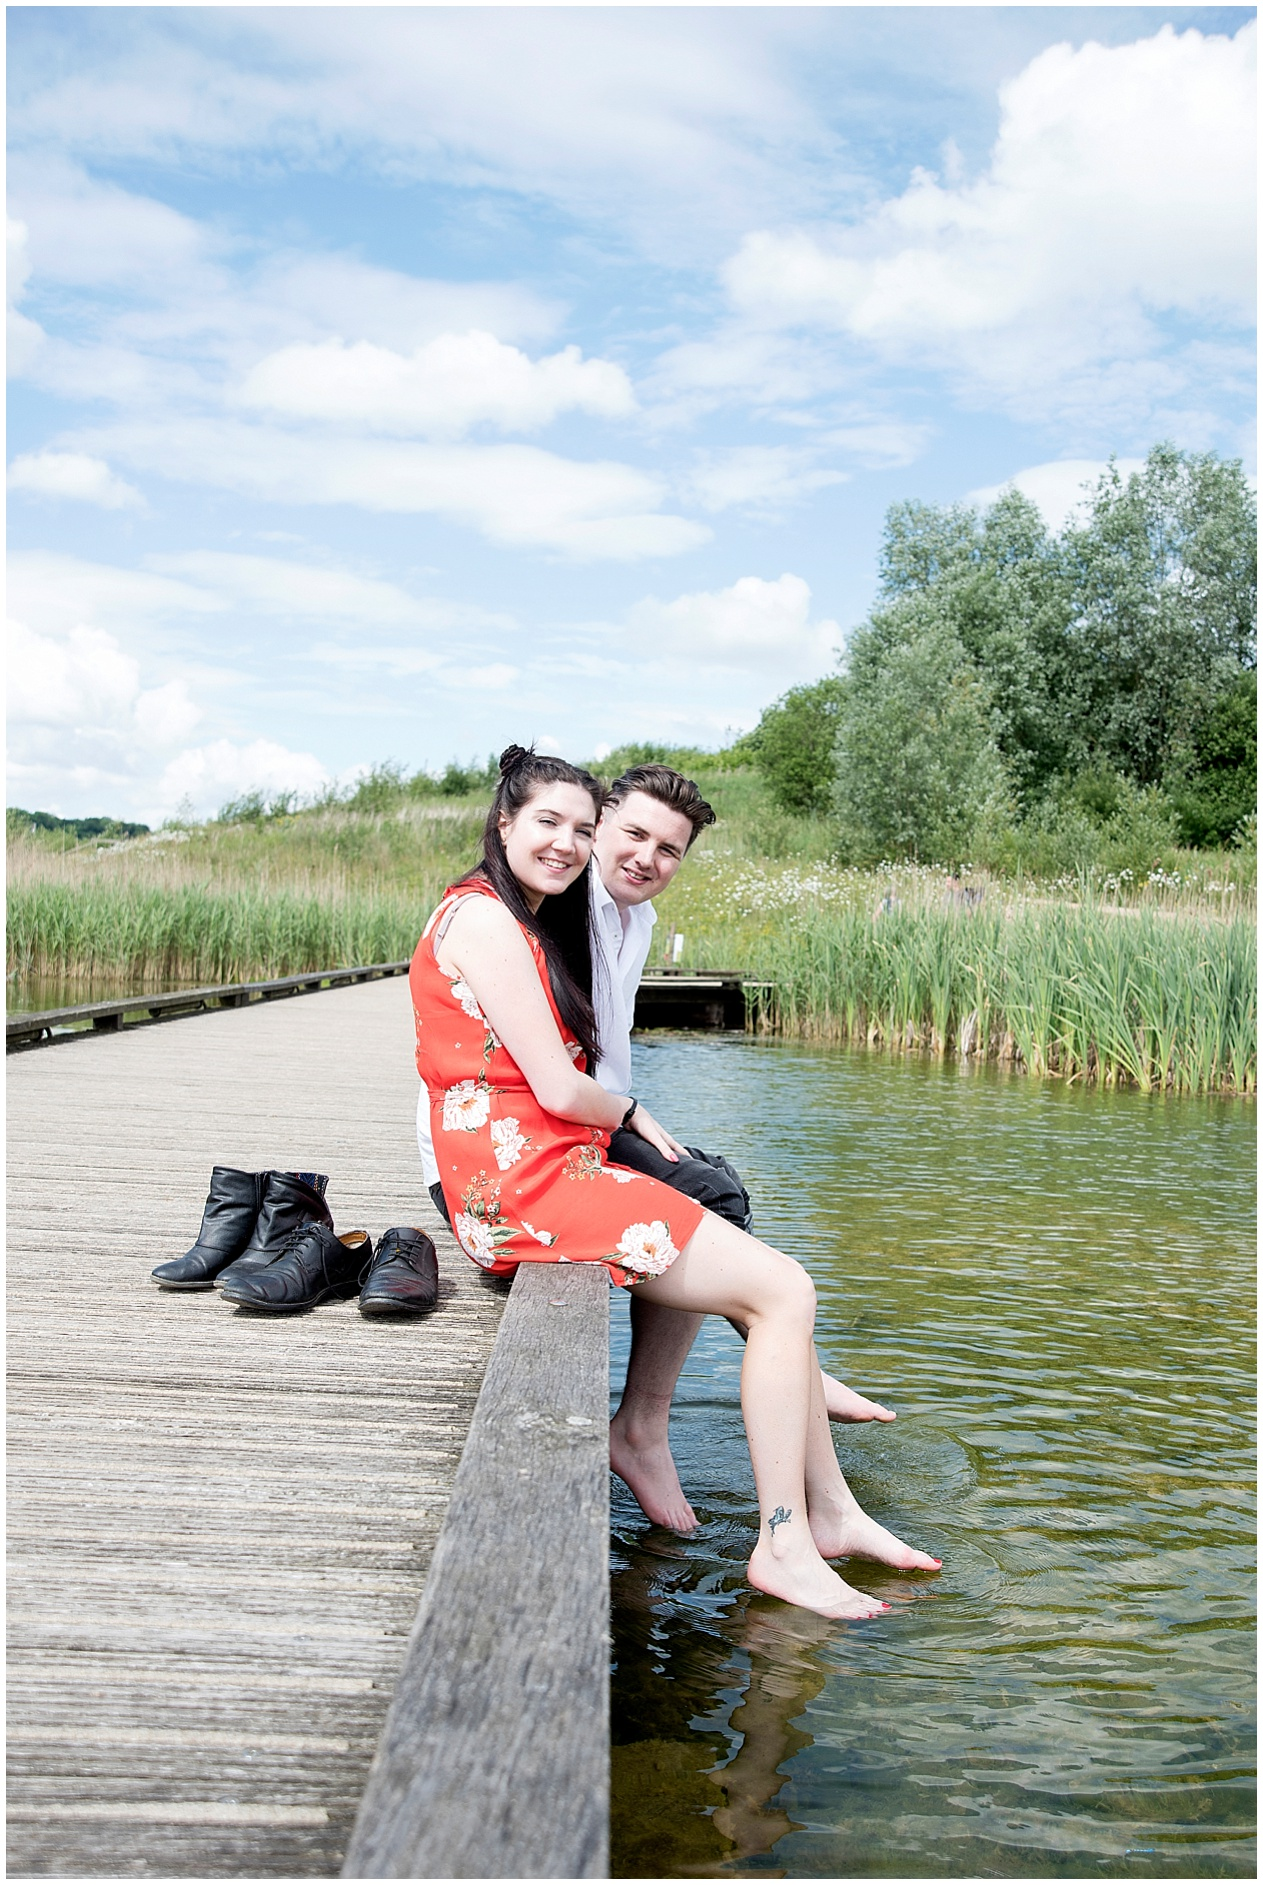 Preston Wedding photographer. A couple pictured on their engagement photoshoot at Brockholes nature reserve.